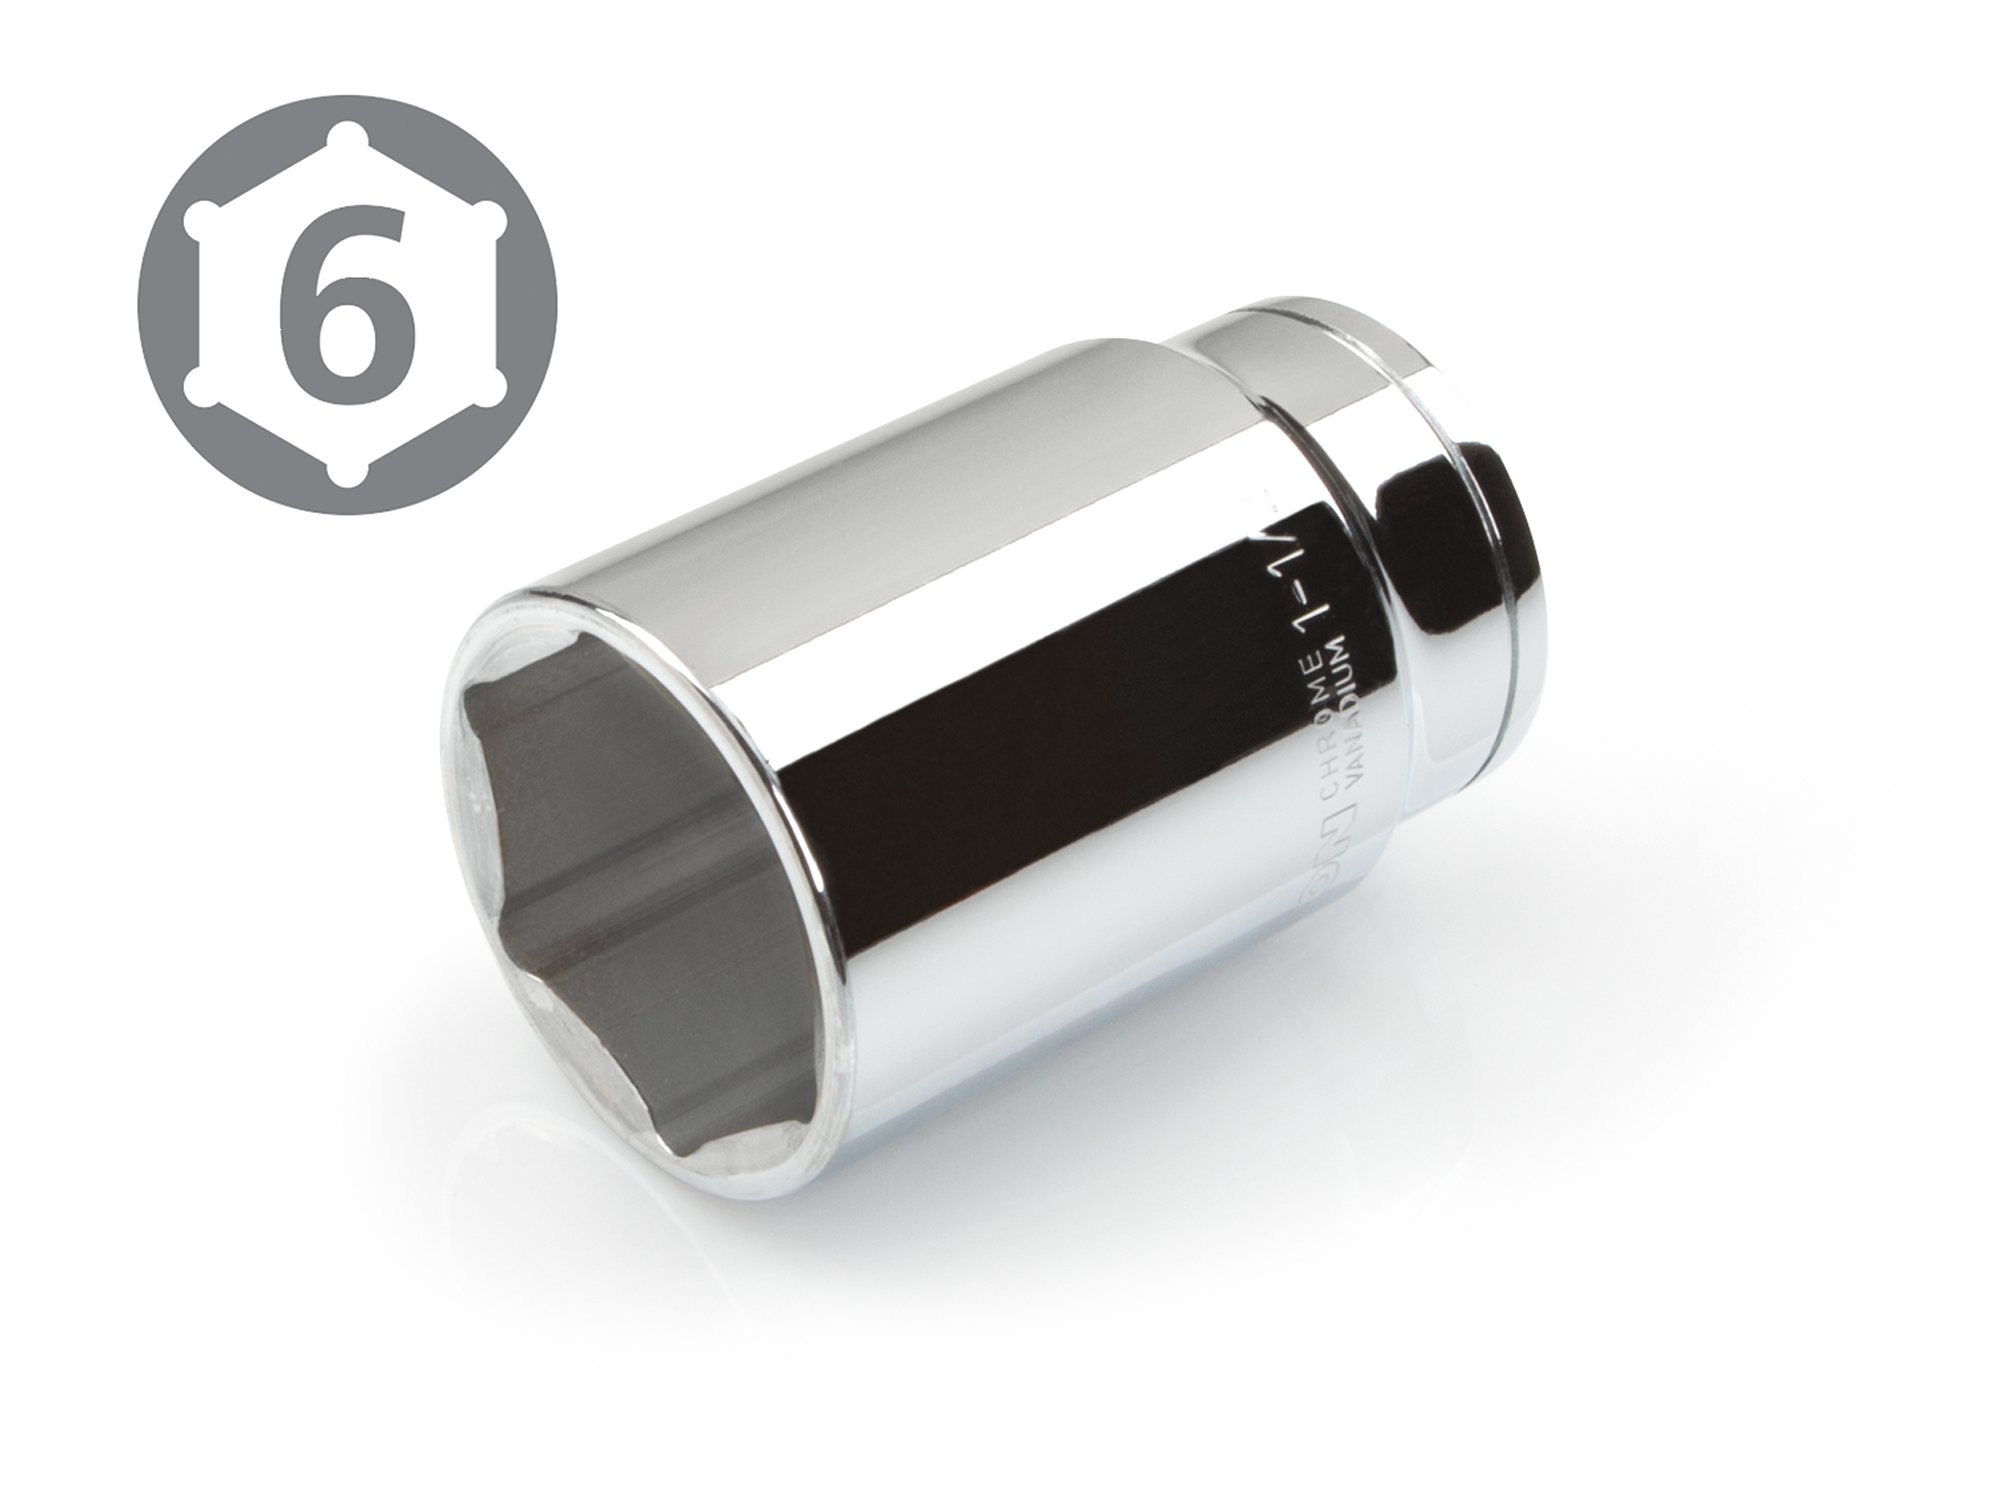 TEKTON 1828 1/2-Inch by 1-1/2-Inch Water Heater Socket by TEKTON (Image #2)